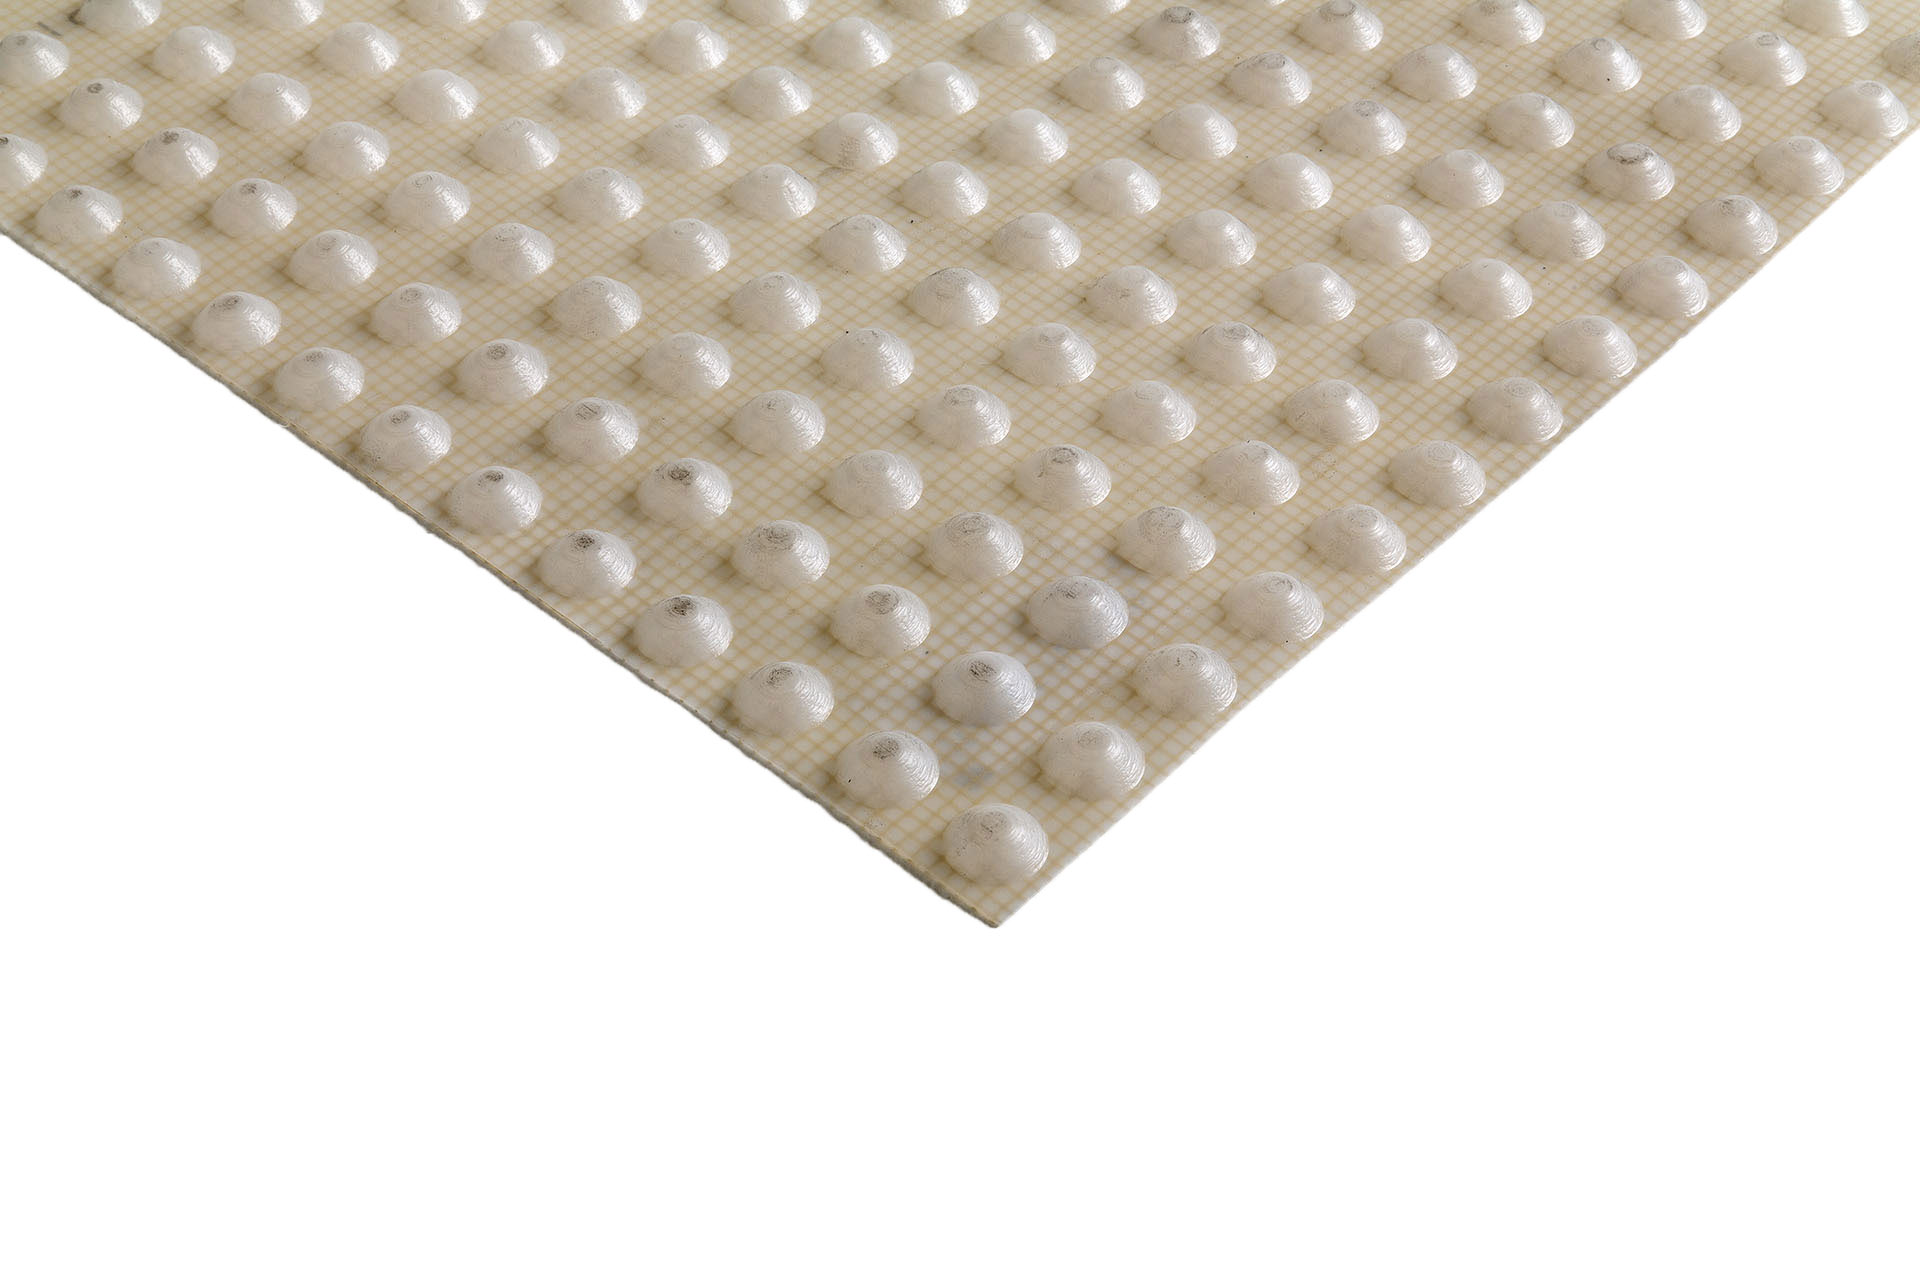 Studded membrane for Interior wet walls